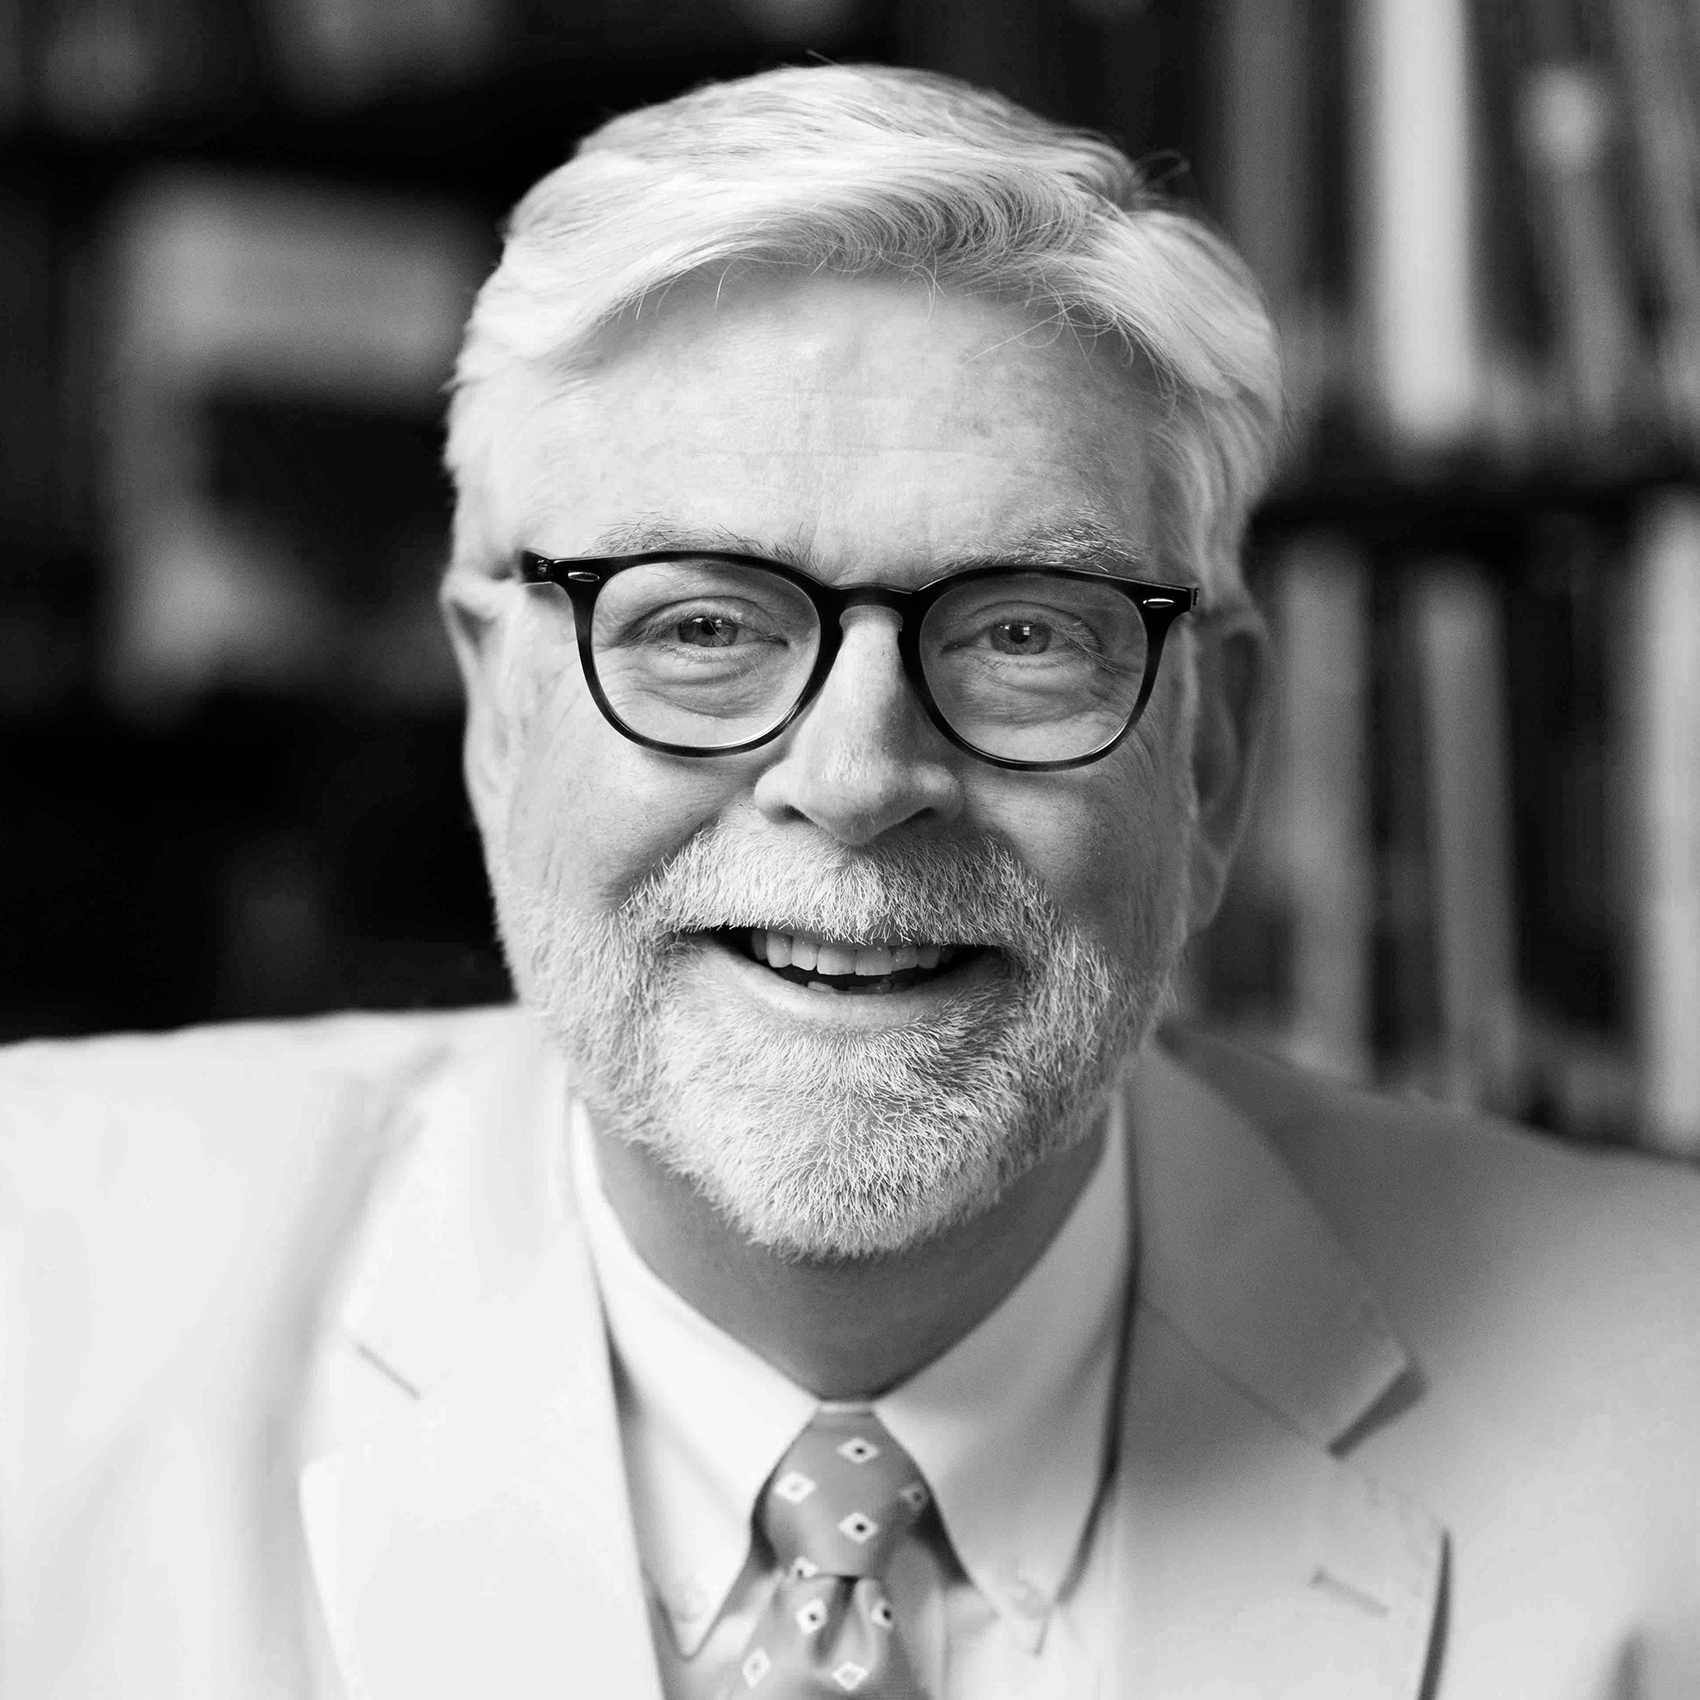 Dr. Hershael W. YORK - Dean of Southern Seminary's School of Theology in Louisville, KYSenior Pastor of Buck Run Baptist Church in Frankfort, KY